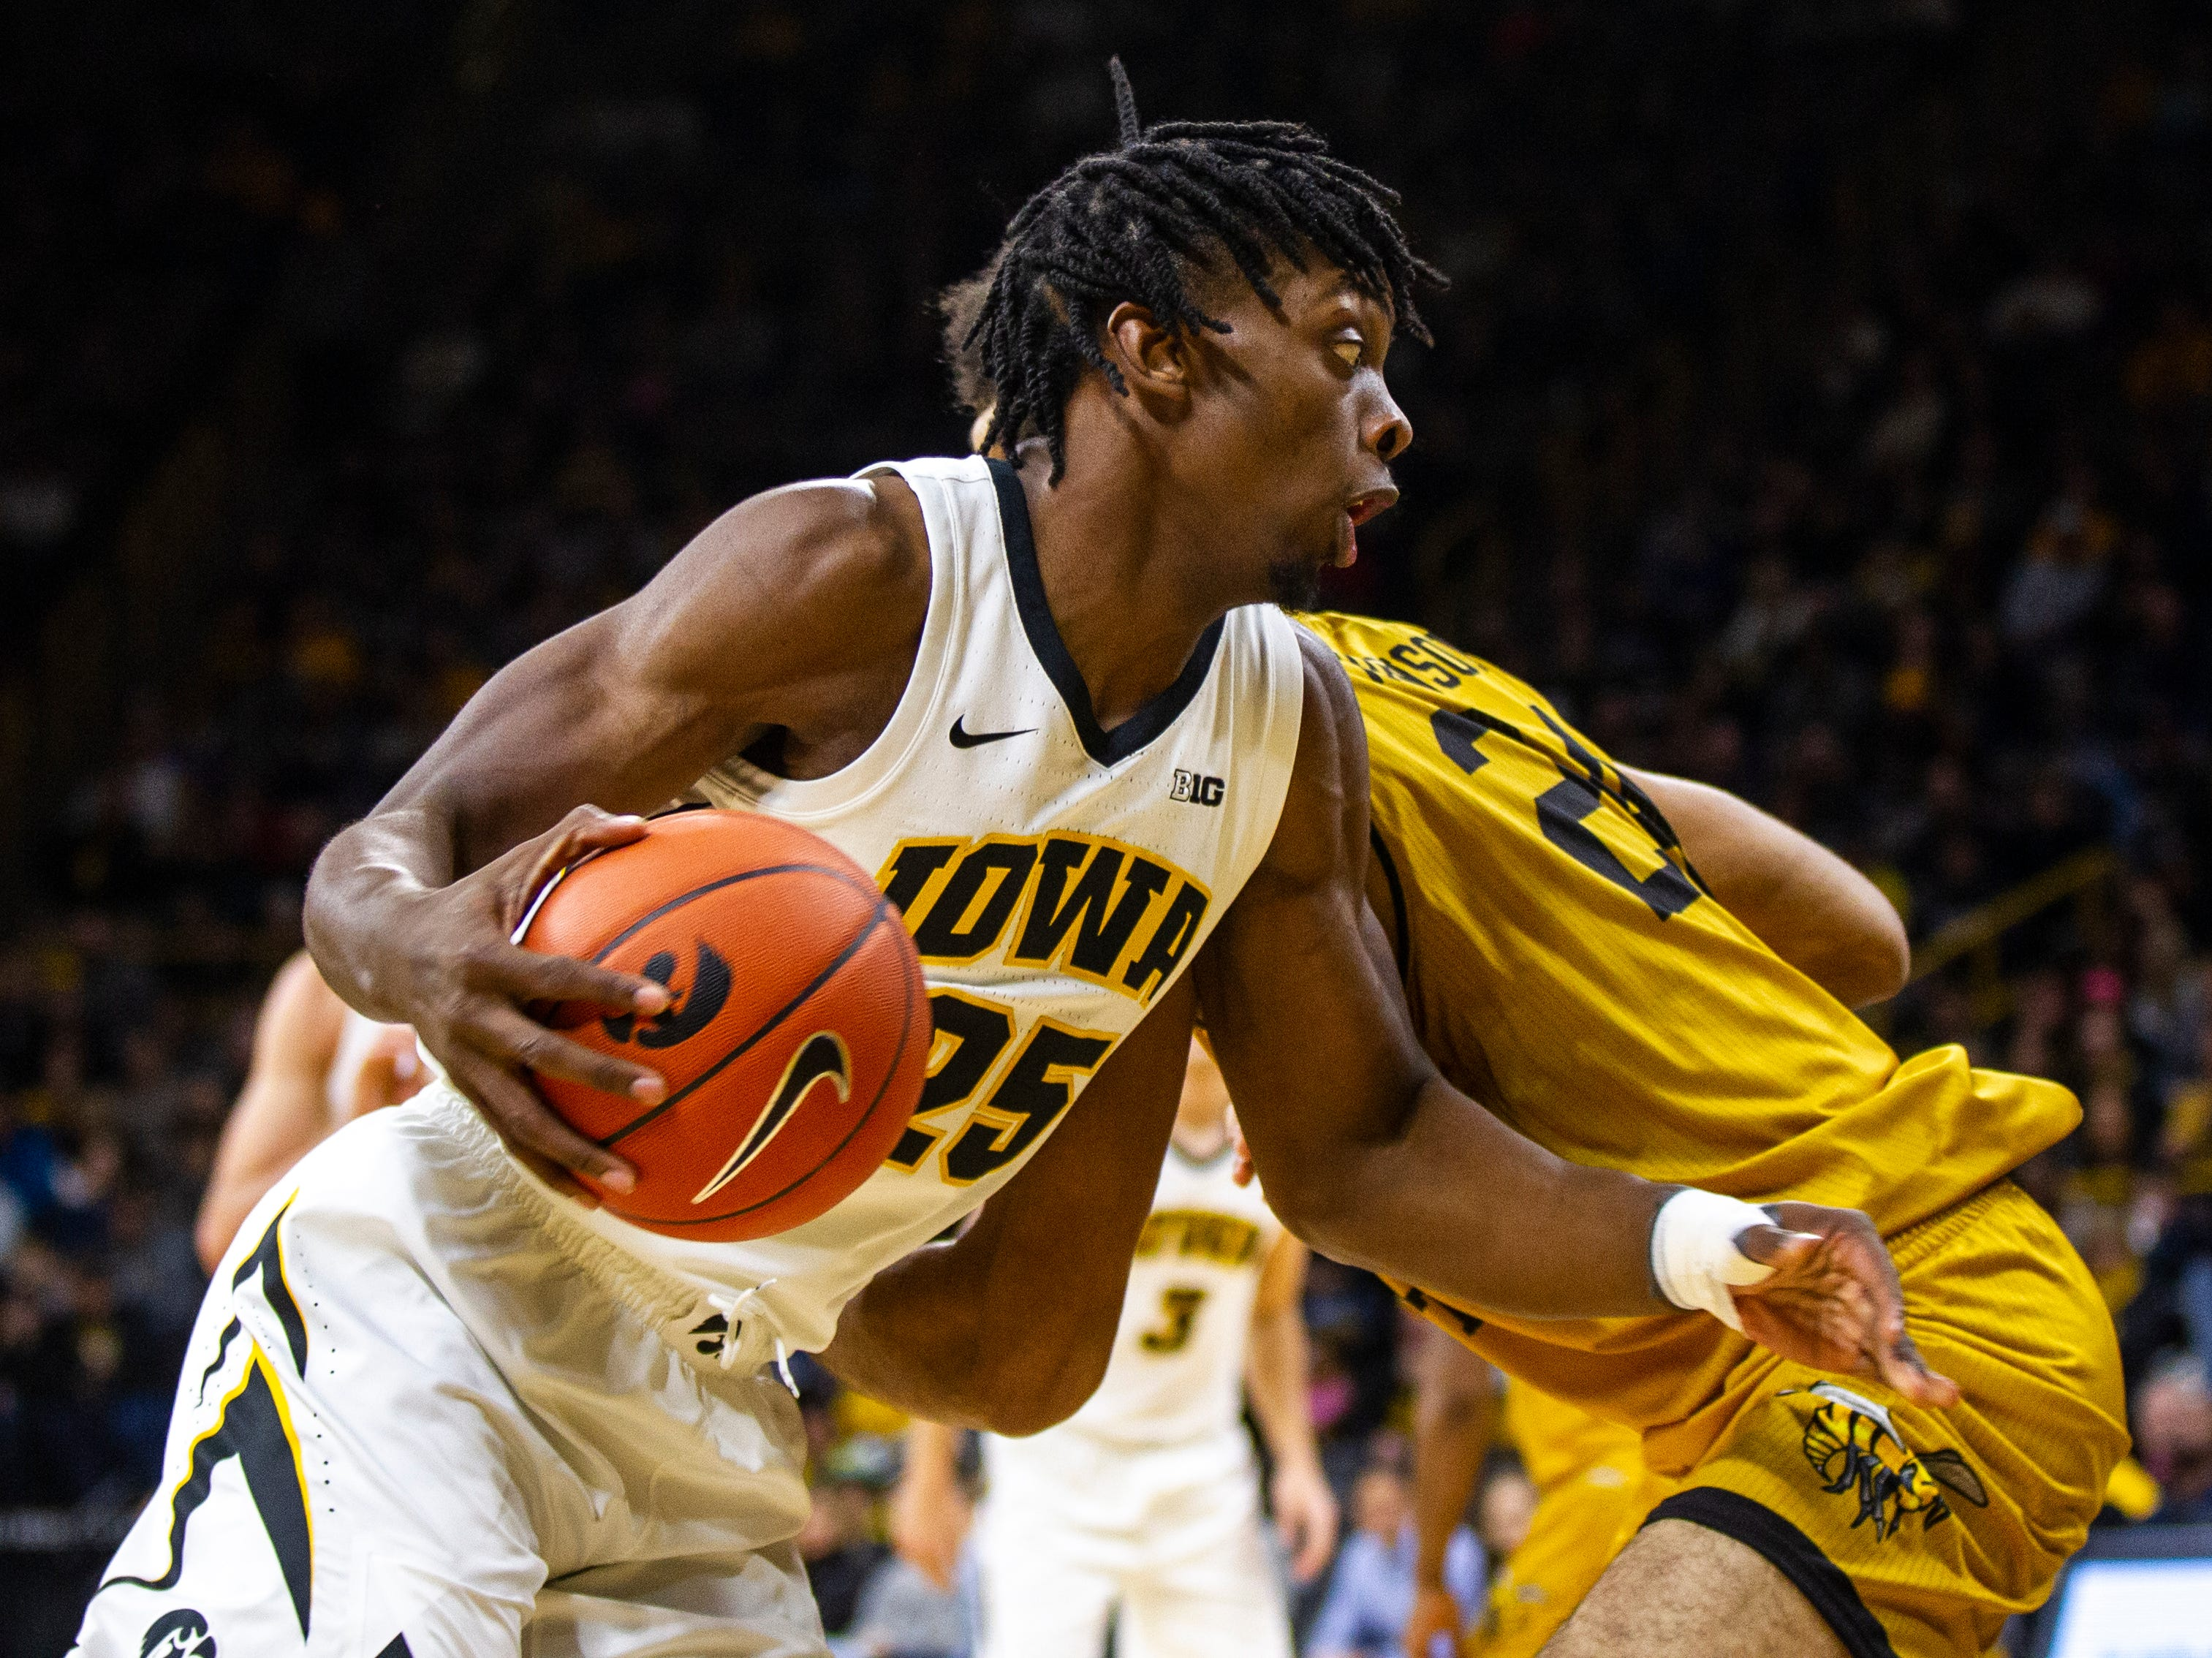 Iowa forward Tyler Cook (25) drives to the hoop during an NCAA men's basketball game on Wednesday, Nov. 21, 2018, at Carver-Hawkeye Arena in Iowa City.